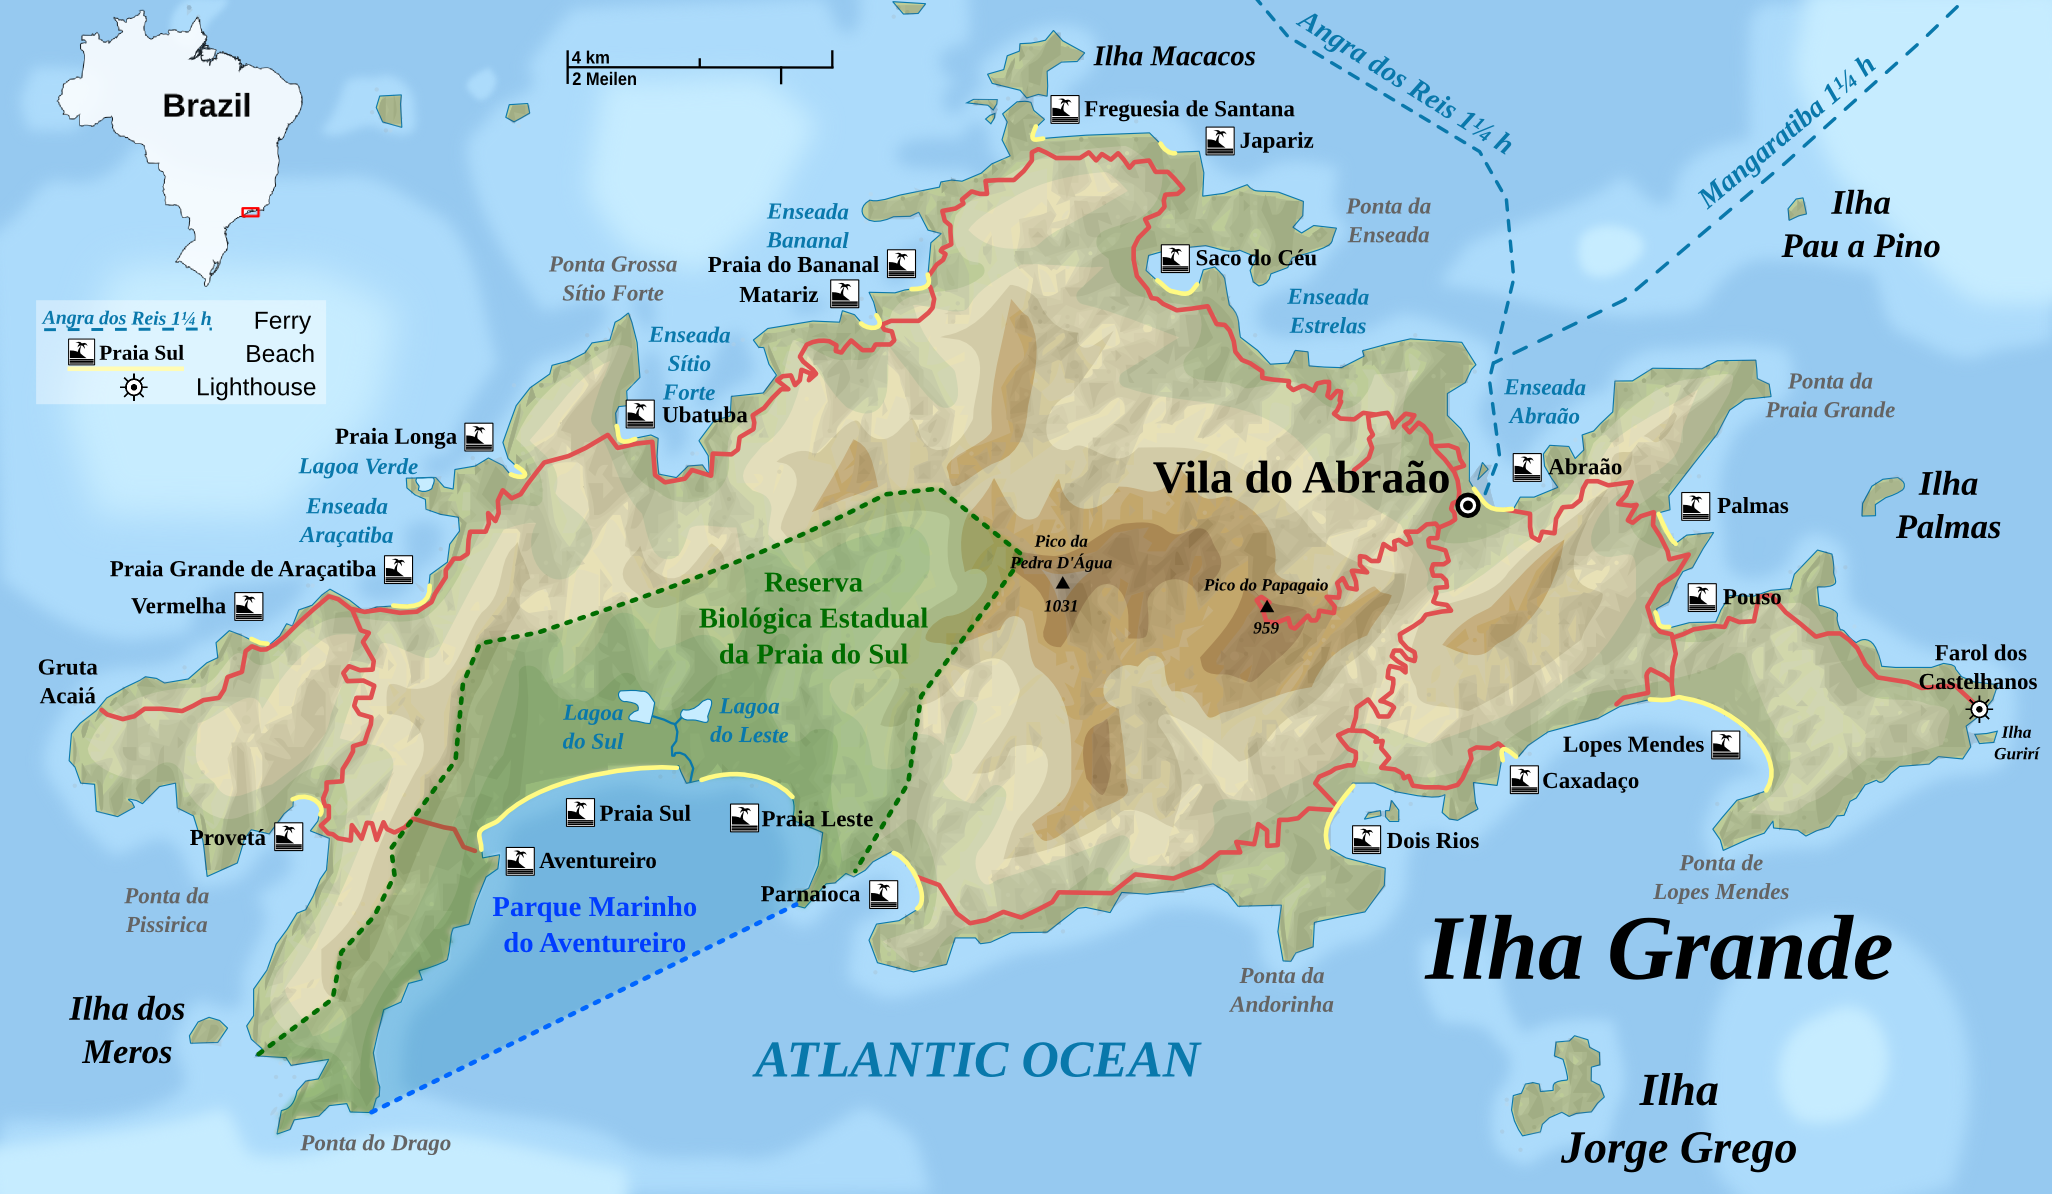 https://upload.wikimedia.org/wikipedia/commons/7/76/Ilha_Grande_topographic_map-EN.png